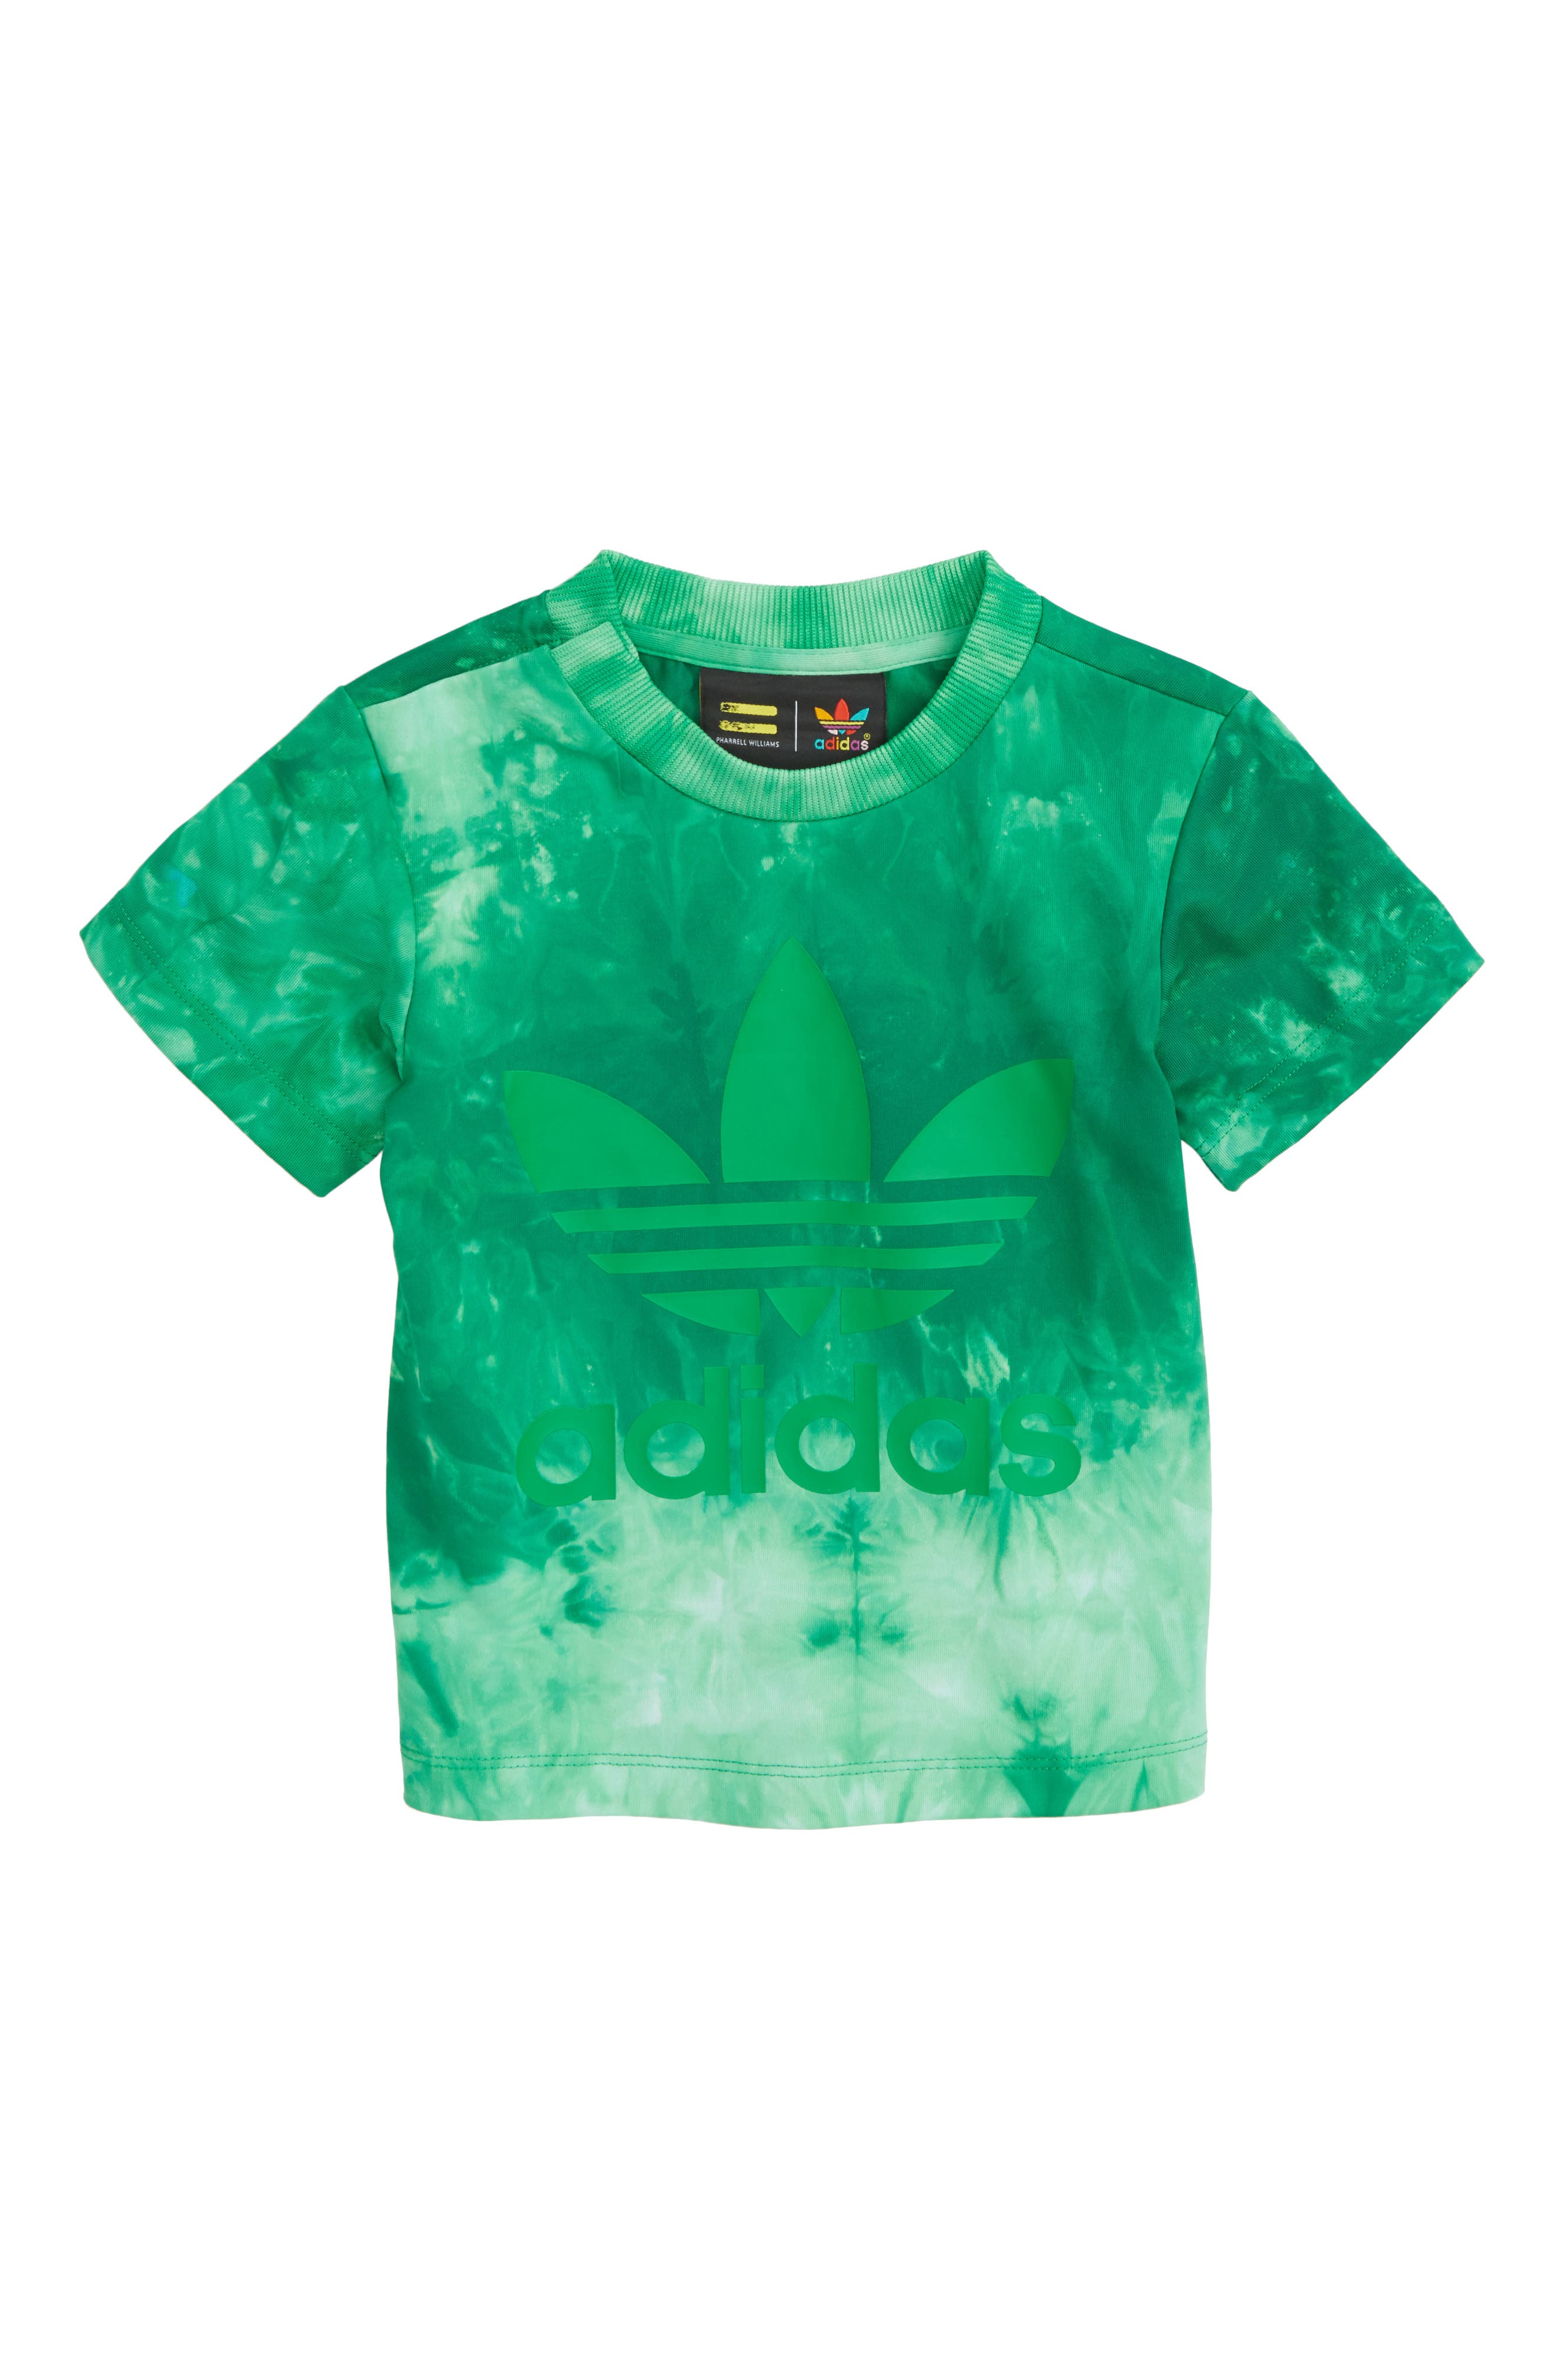 Hu Holi Graphic T-Shirt,                         Main,                         color, Green/ White